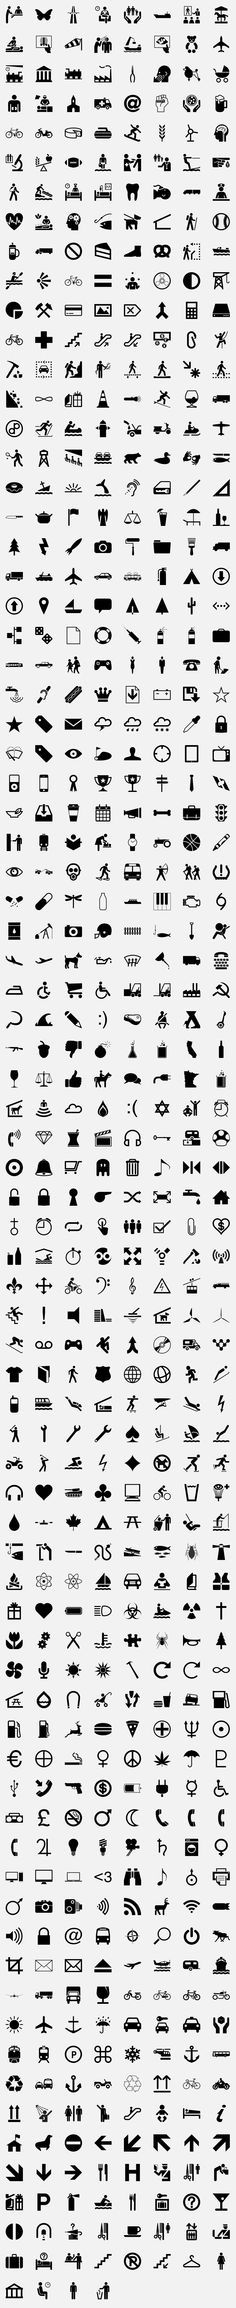 The Noun Project is a free,  online symbol library of the world's visual language that can be understood by all cultures and all people. http://thenounproject.com/